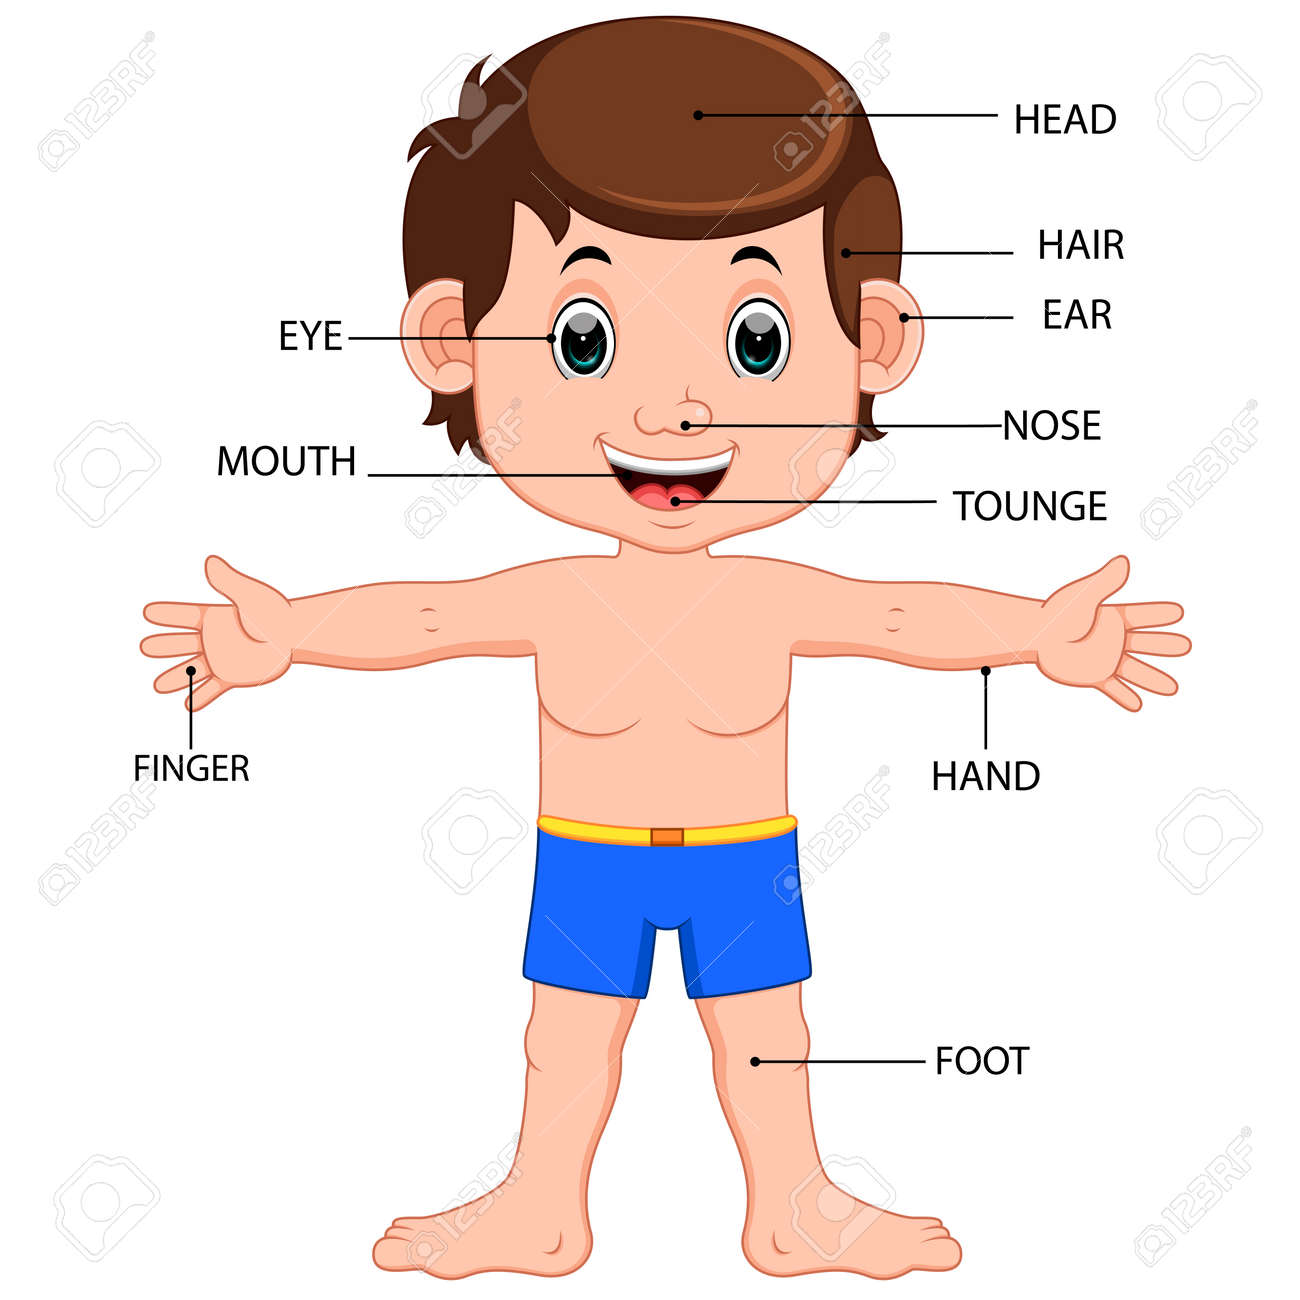 Boy Body Parts Diagram Poster Stock Photo, Picture And Royalty Free ...